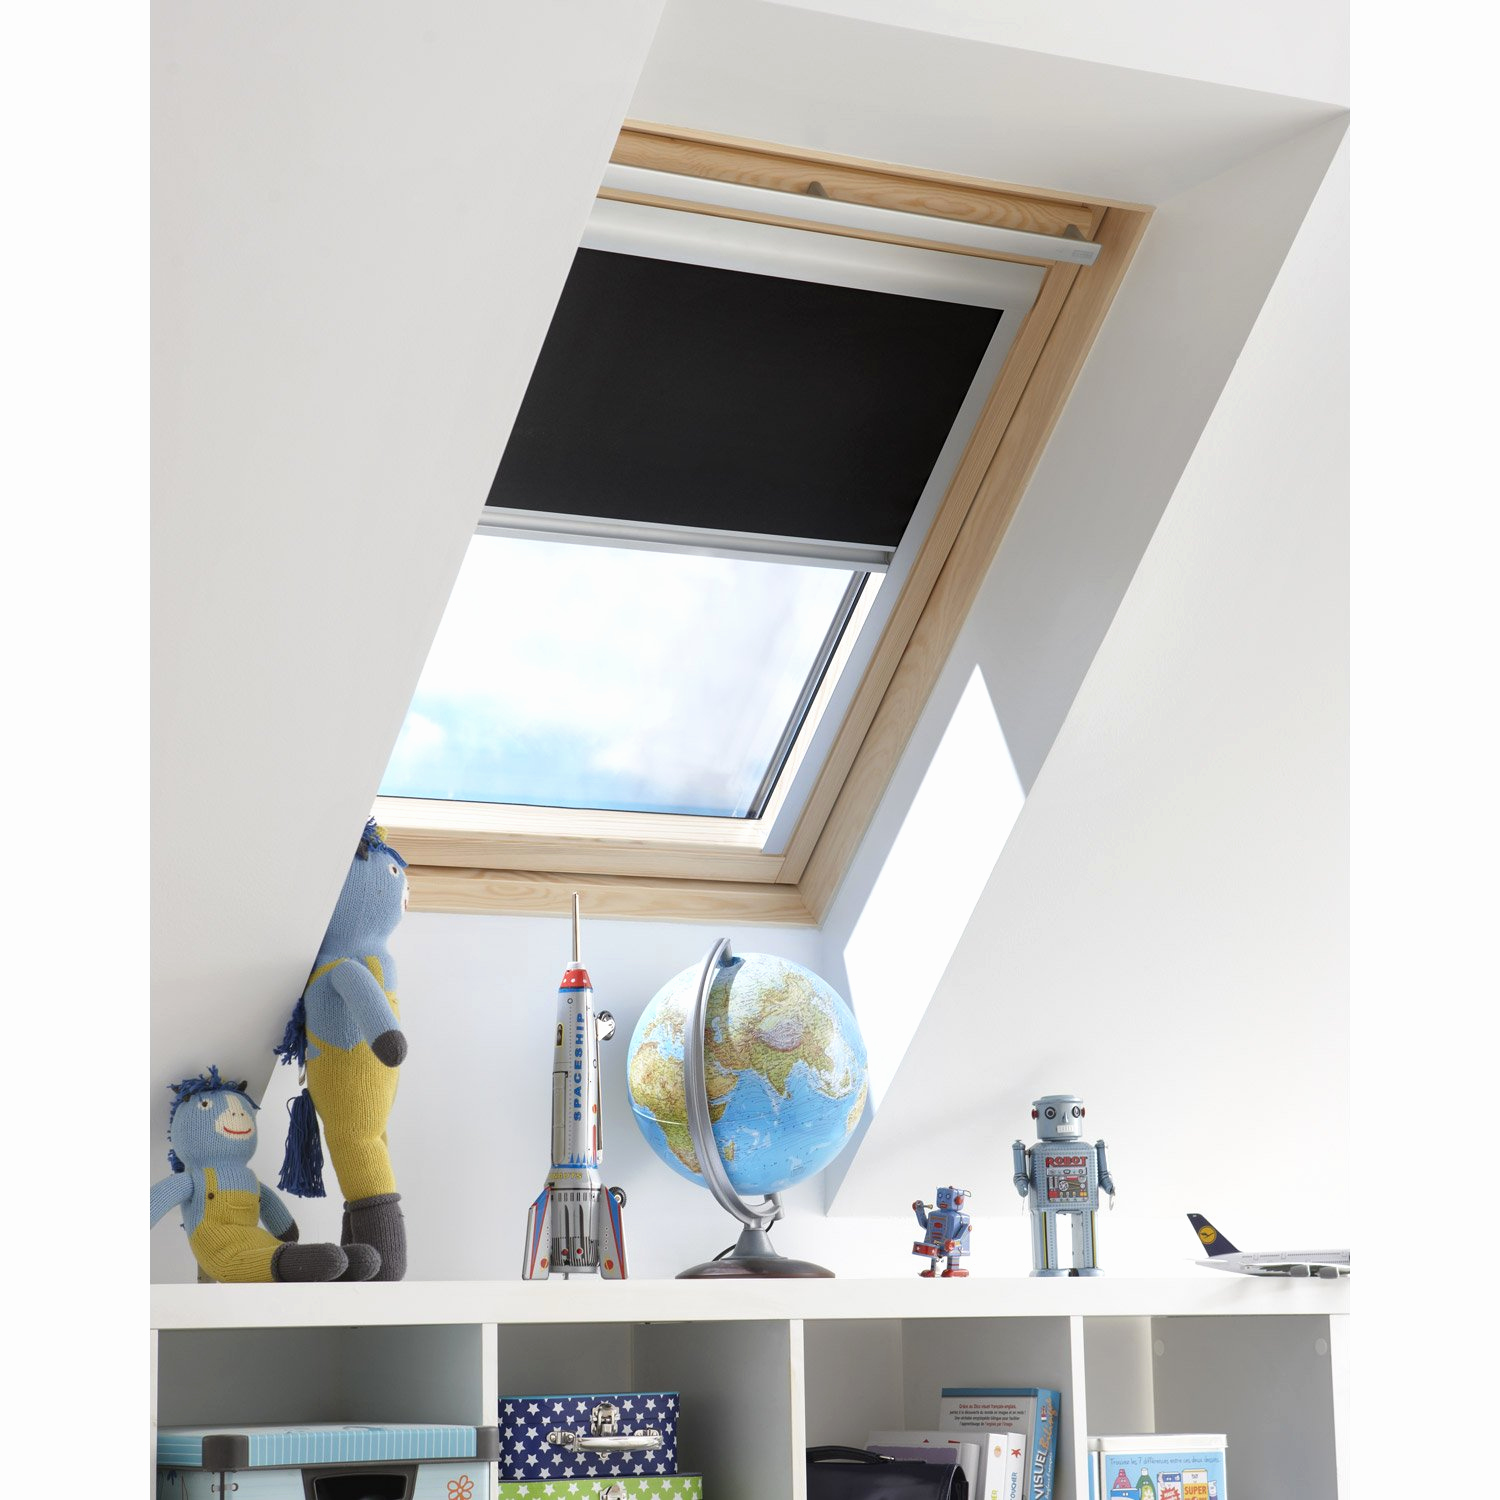 fenetre de toit velux la baule gu rande pornichet saint nazaire r novation habitat 44 la baule. Black Bedroom Furniture Sets. Home Design Ideas